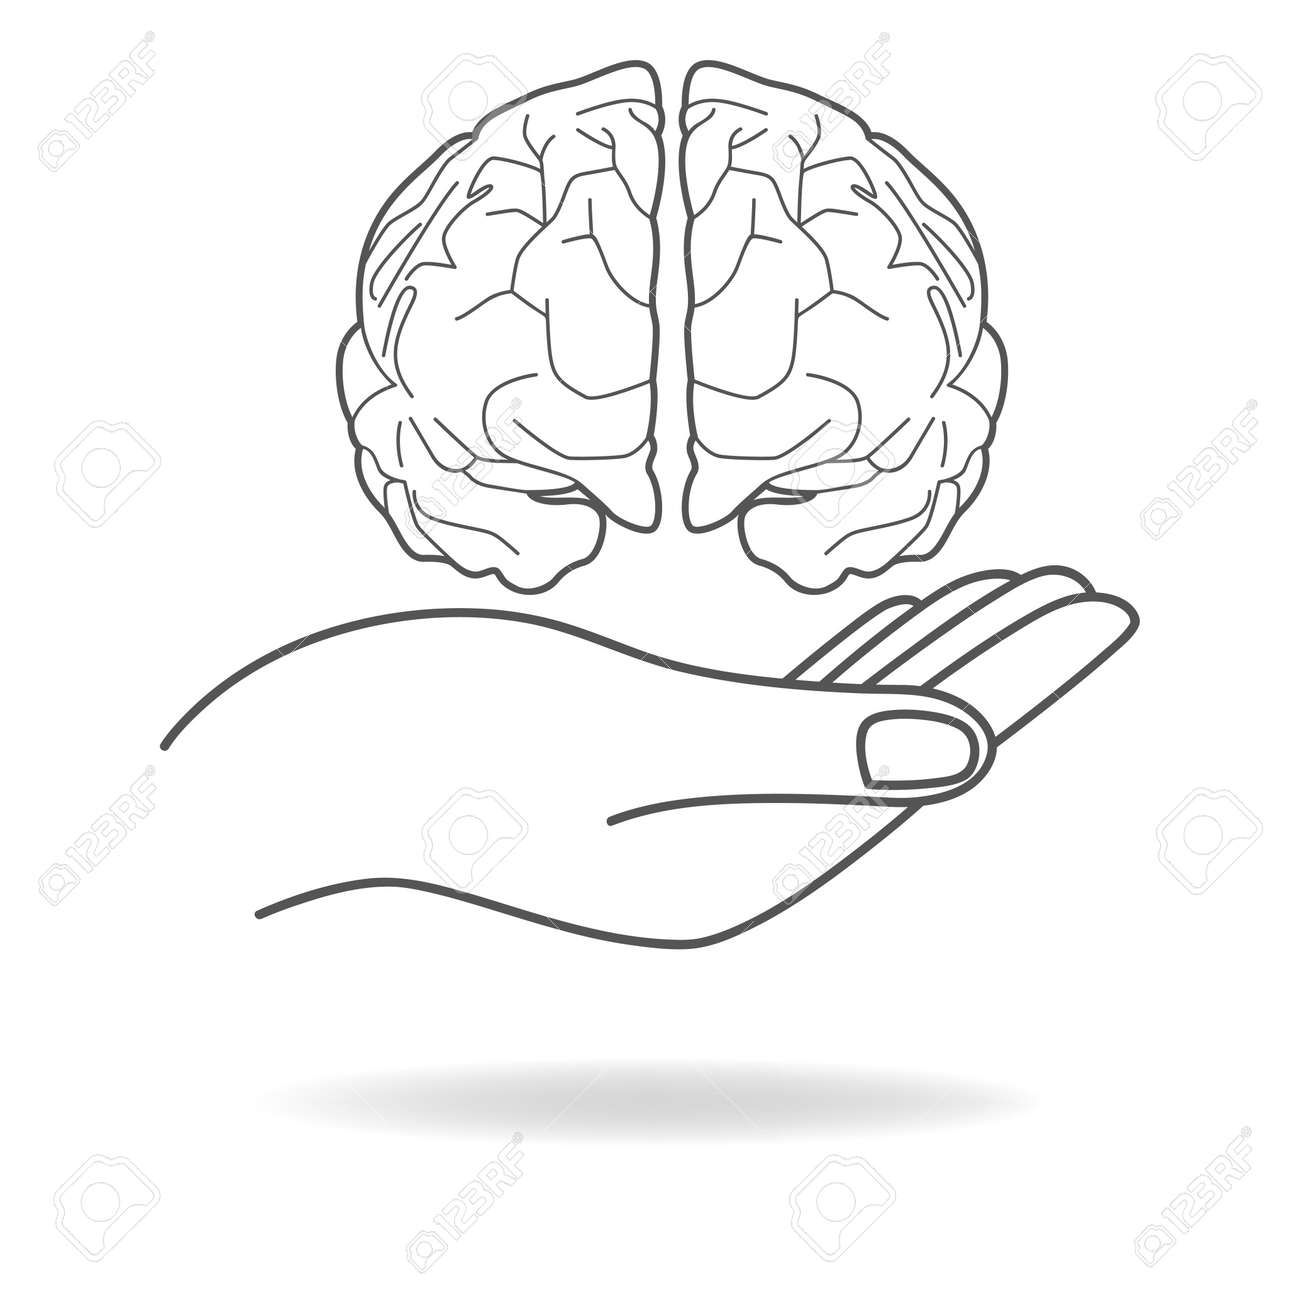 Icon of a hand holding a human brain - 54909371